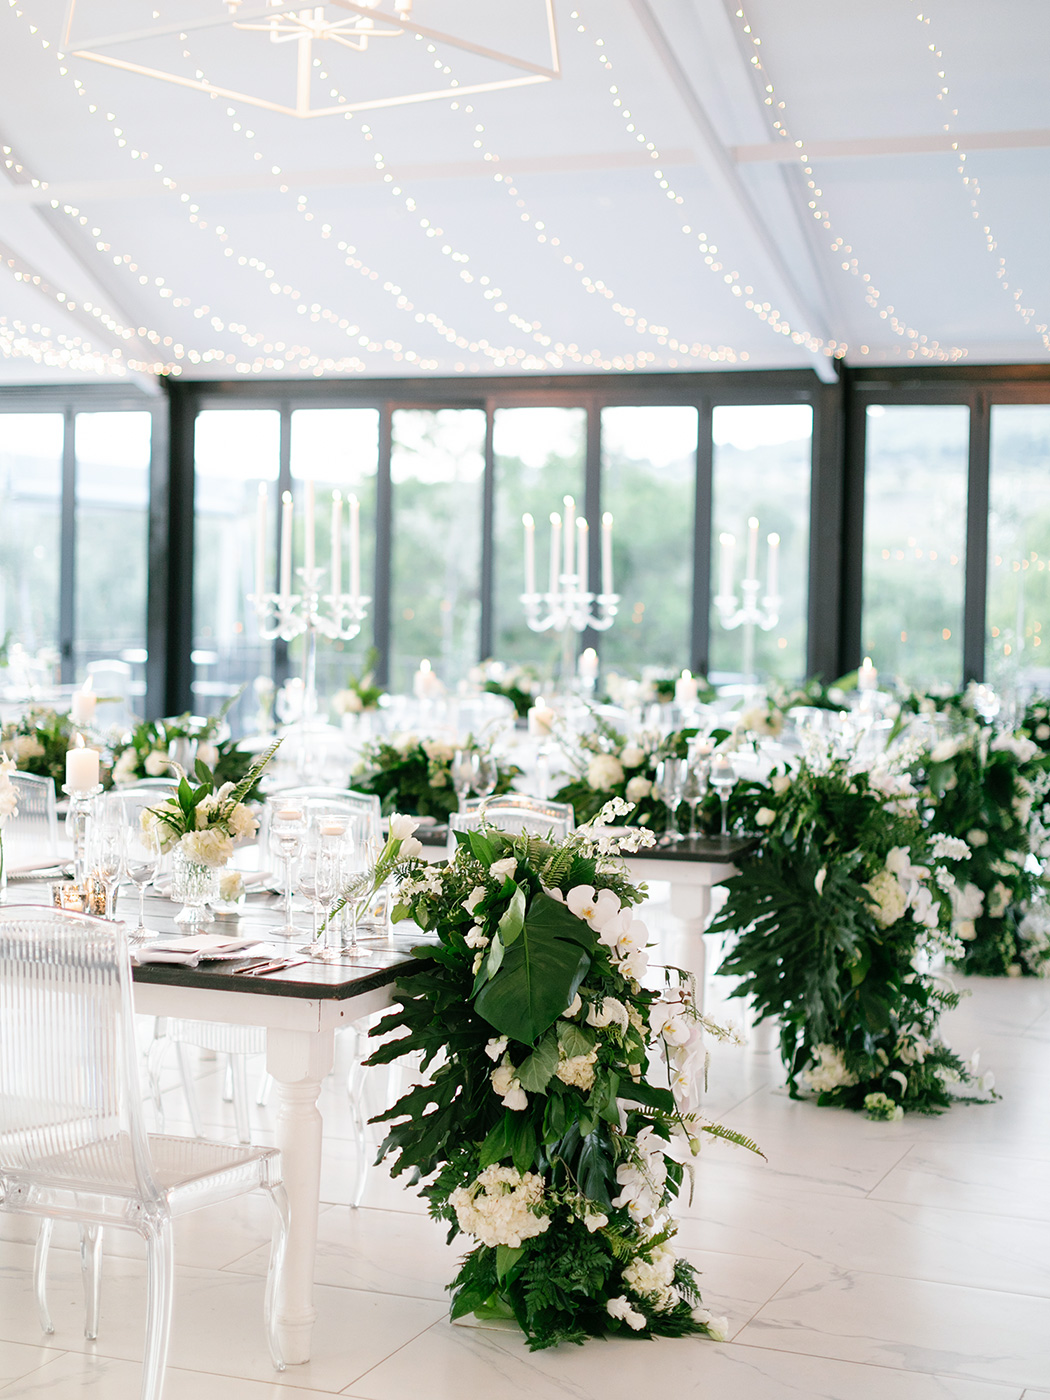 Inimitable Wedding Venue | Rensche Mari Photography